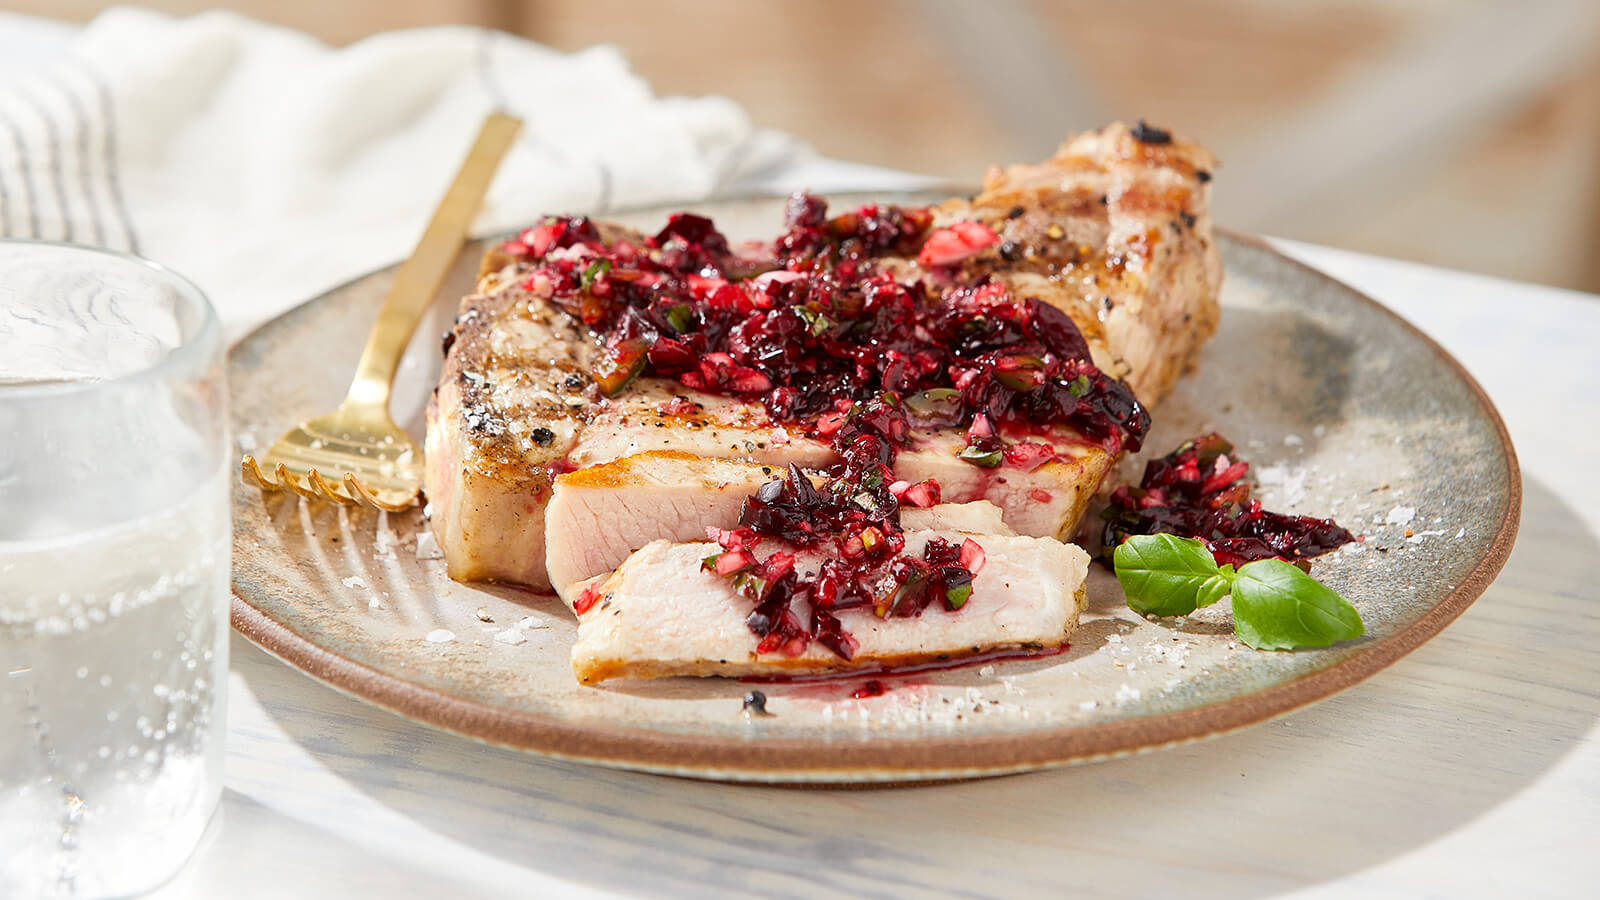 Grilled Pork Chops with Cherry Basil Salsa